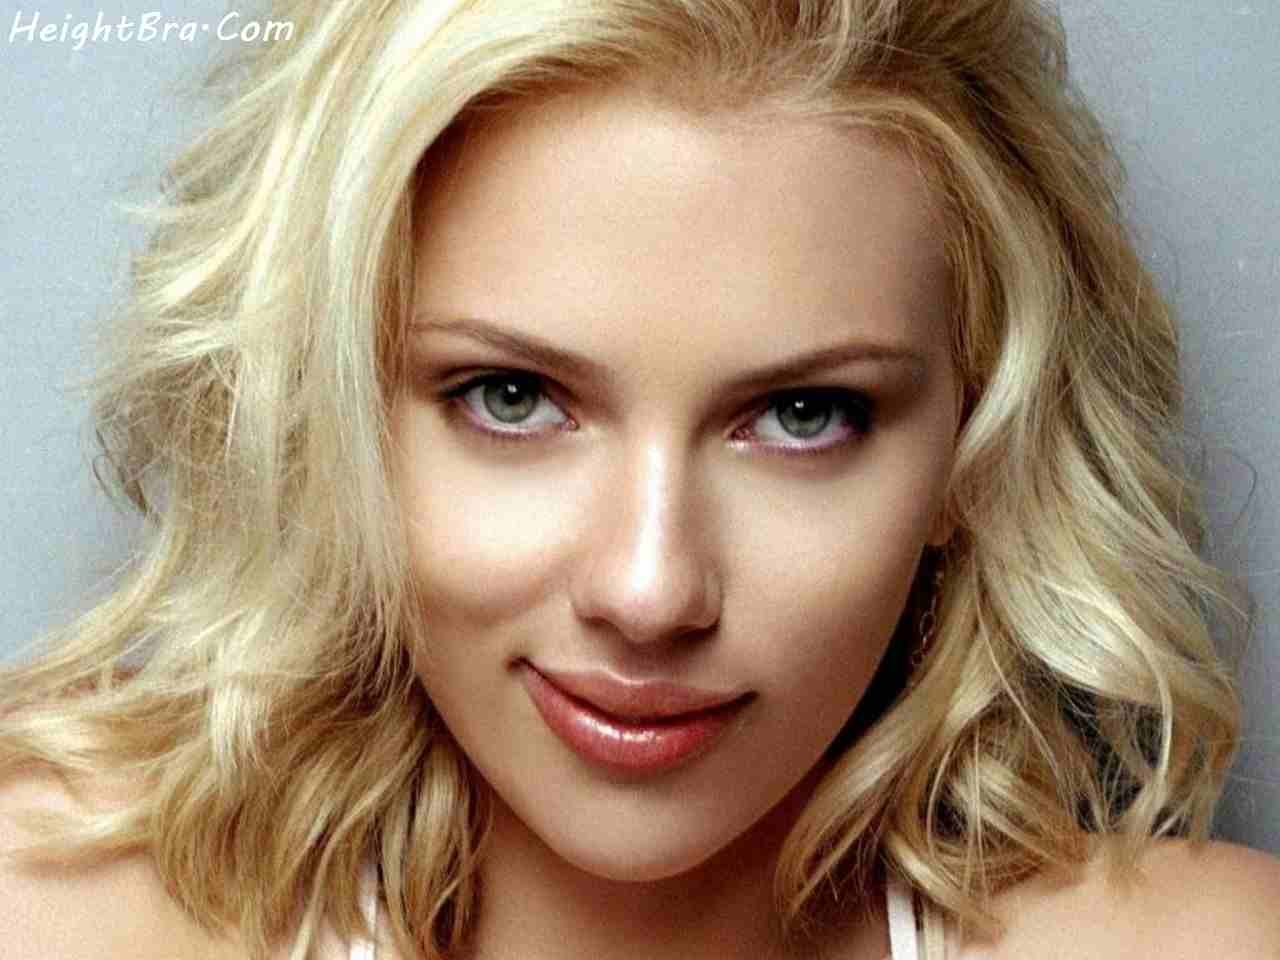 Means not scarlett johansson bra size topic all